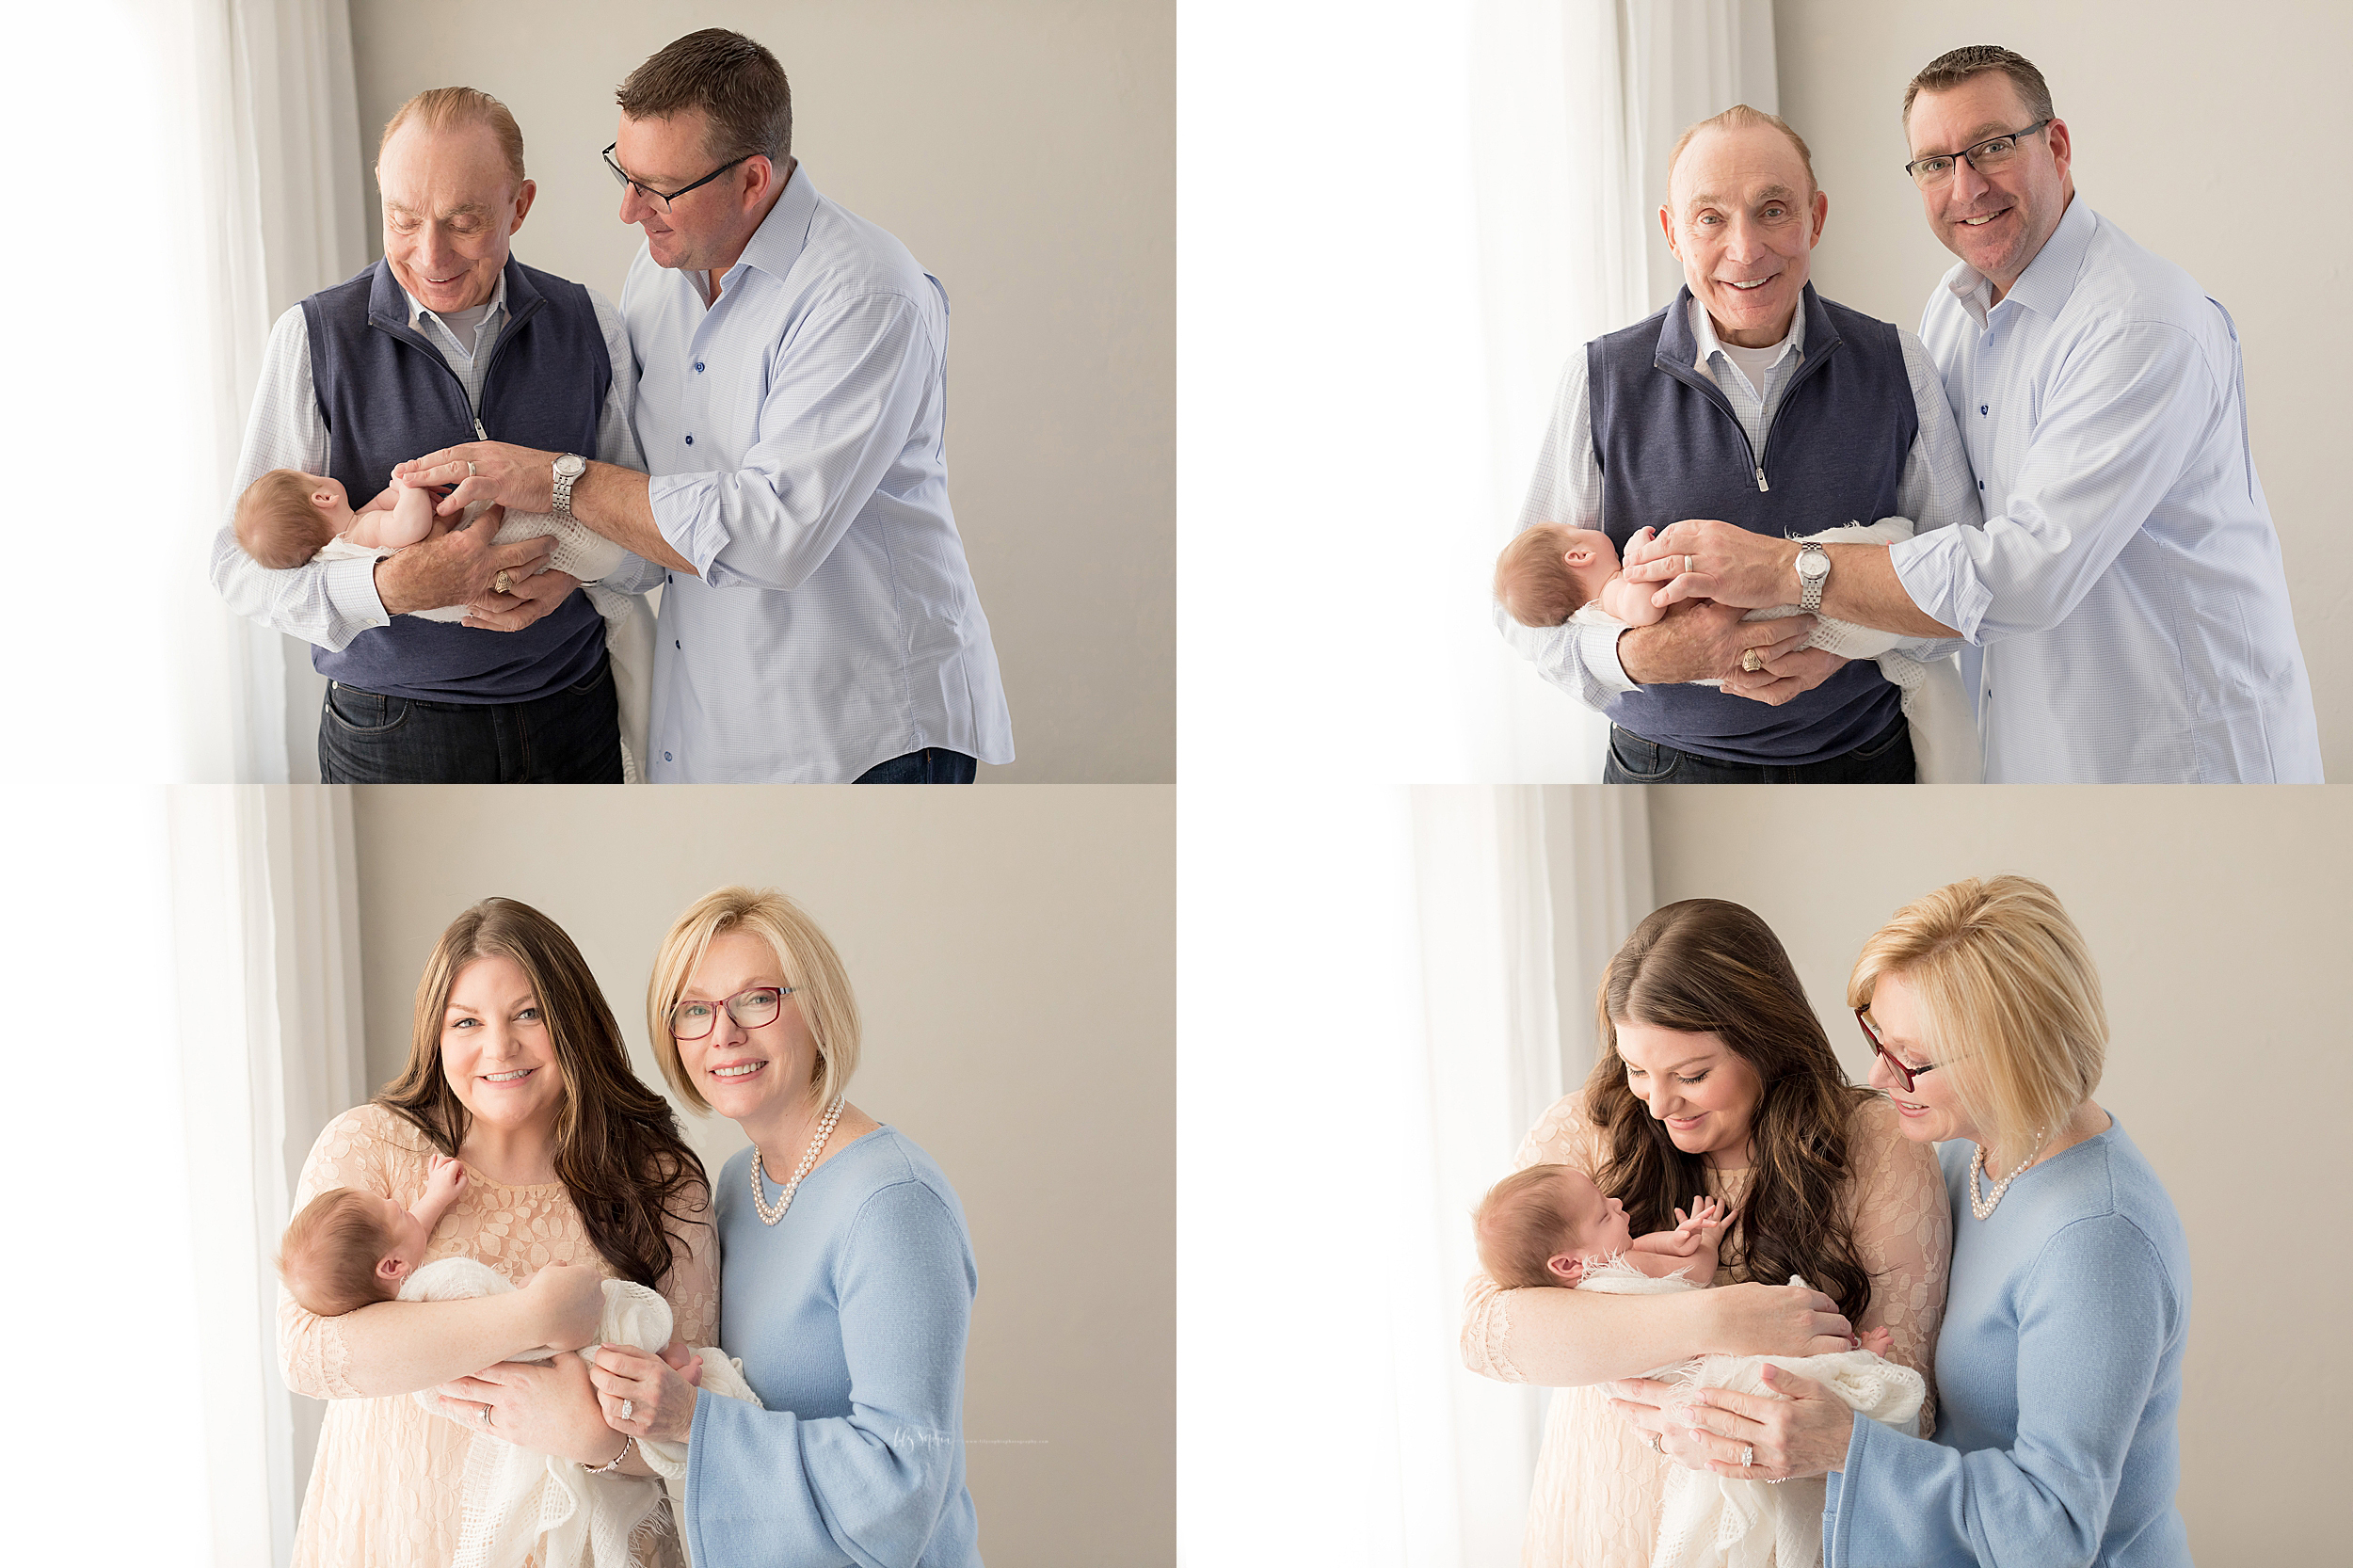 atlanta-midtown-decatur-lily-sophia-photography-family-photographer-newborn-baby-boy-grandparents-photo-gift_0309.jpg